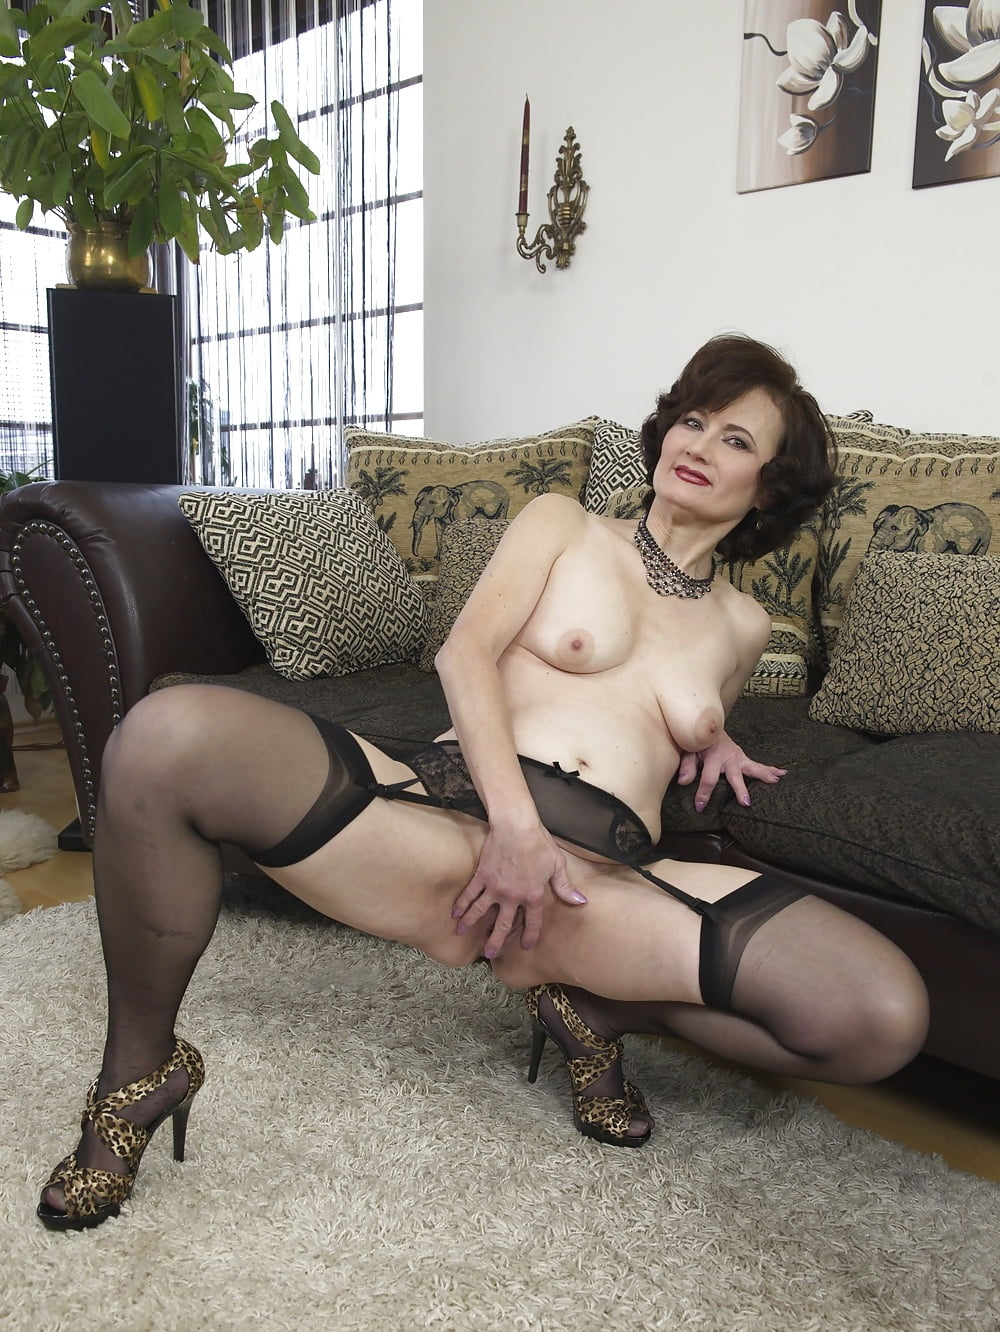 Sex machine my milf girl shoeplaying with her wooden th and